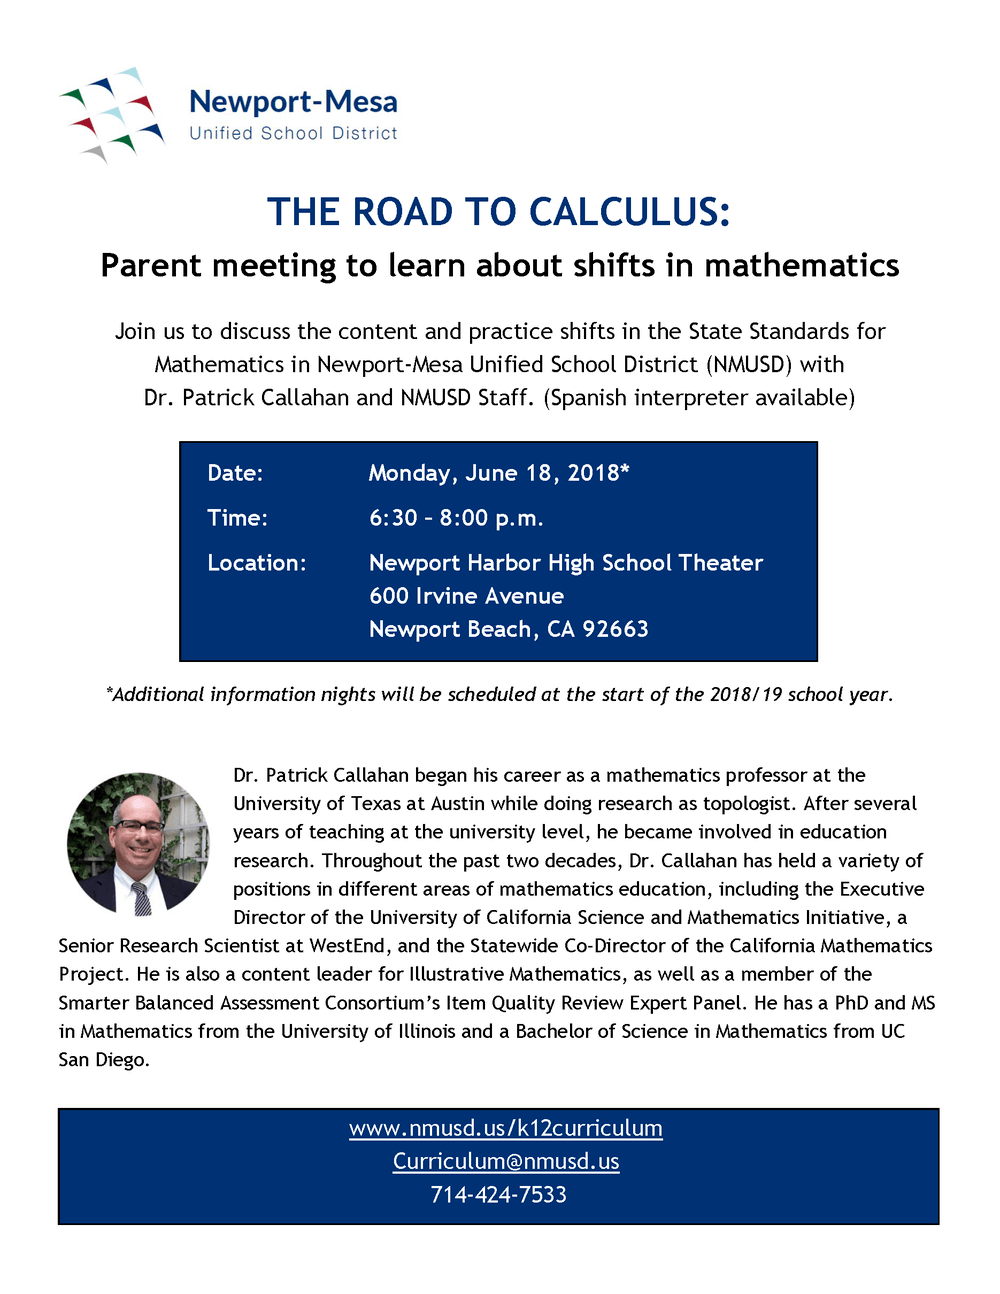 The Road to Calculus Event Flyer